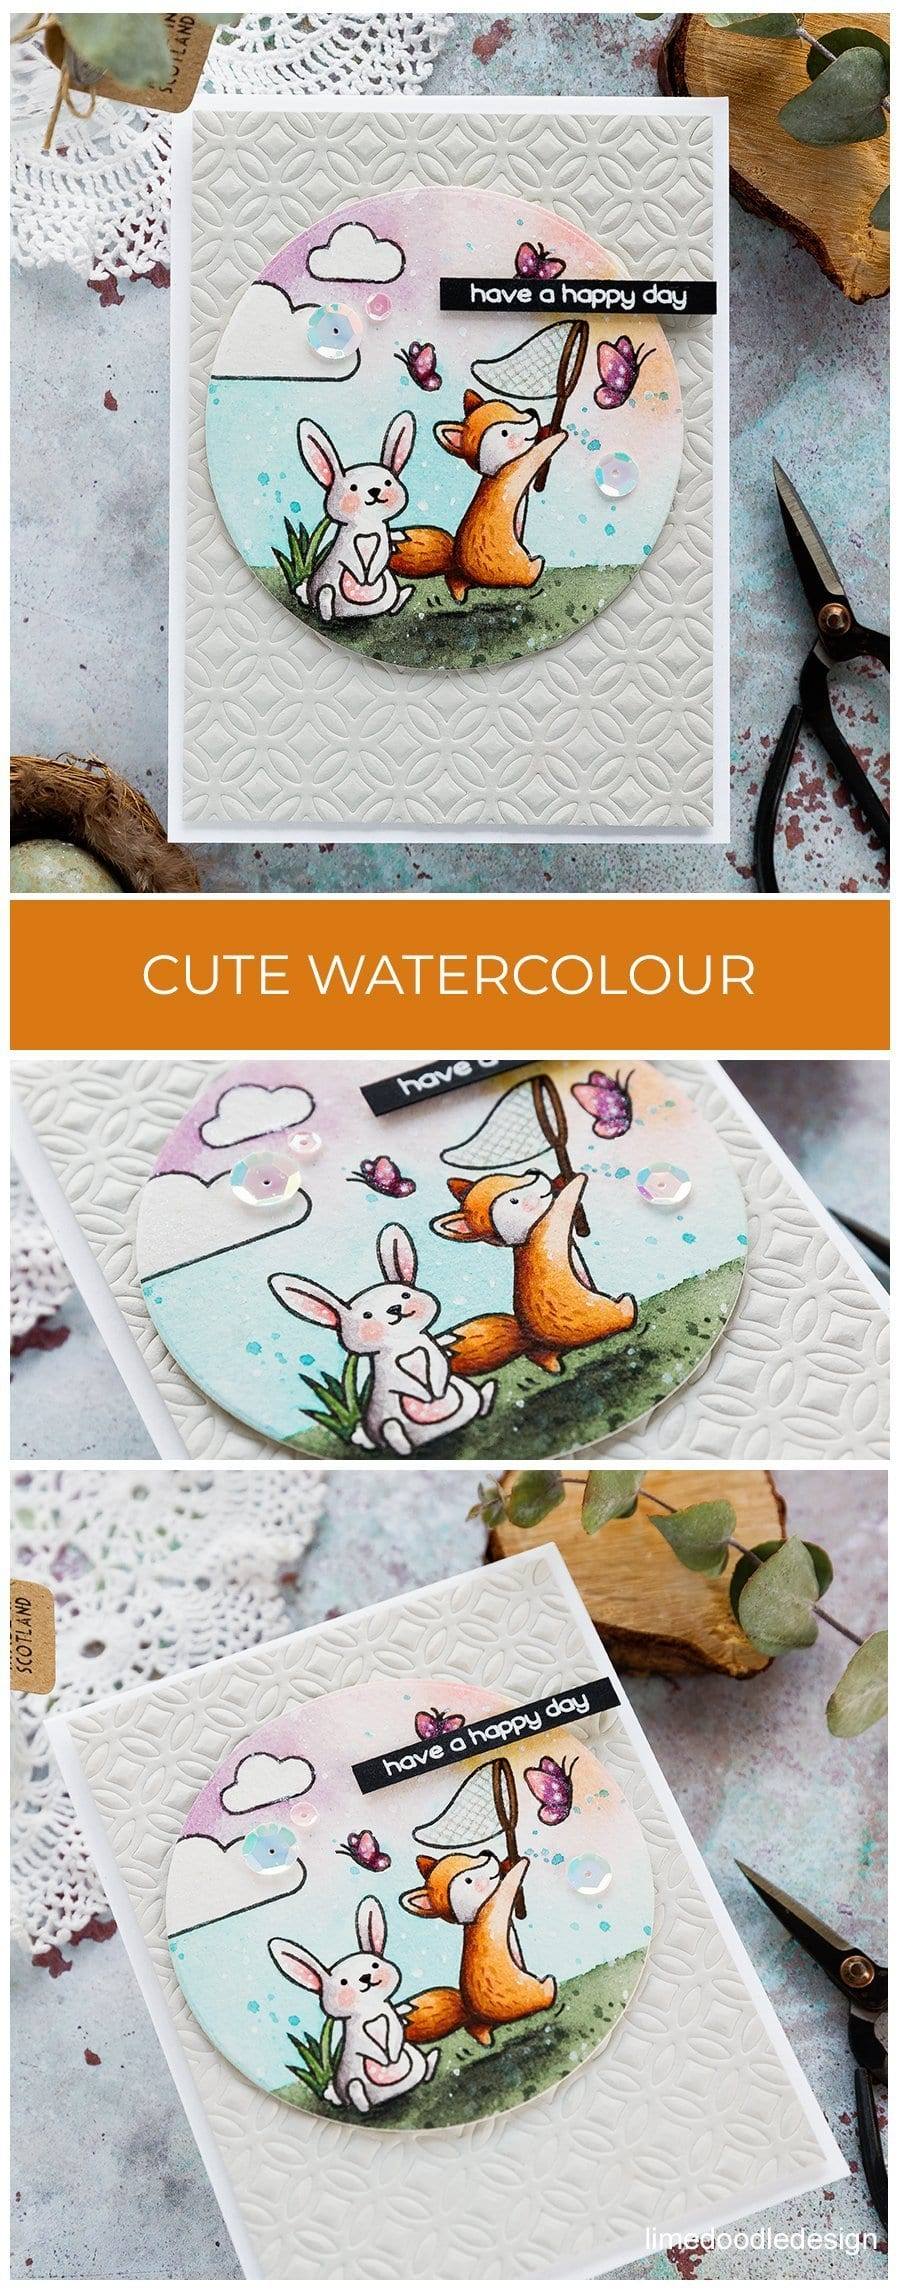 Cute watercoloured scene using new stamps and dies from the Spring 2019 Lawn Fawn release. Handmade birthday card by Debby Hughes. Find out more here: https://limedoodledesign.com/2019/02/cute-watercoloured-scene/